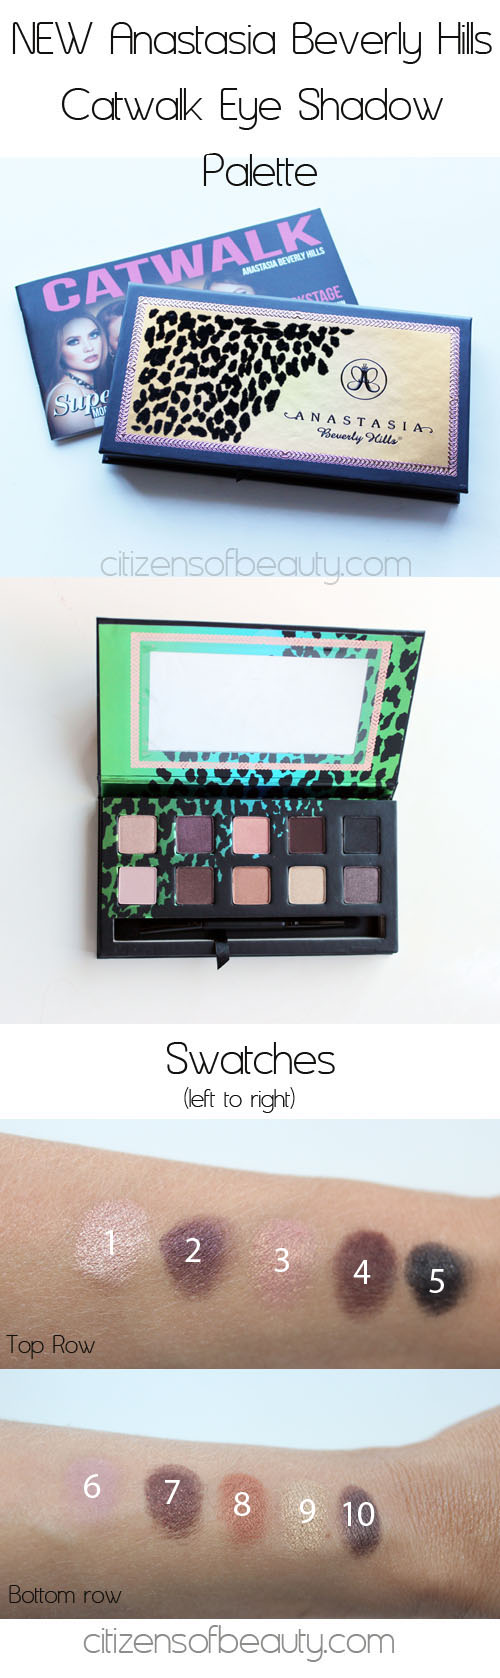 Anastasia Beverly Hills Catwalk Eye Shadow Palette